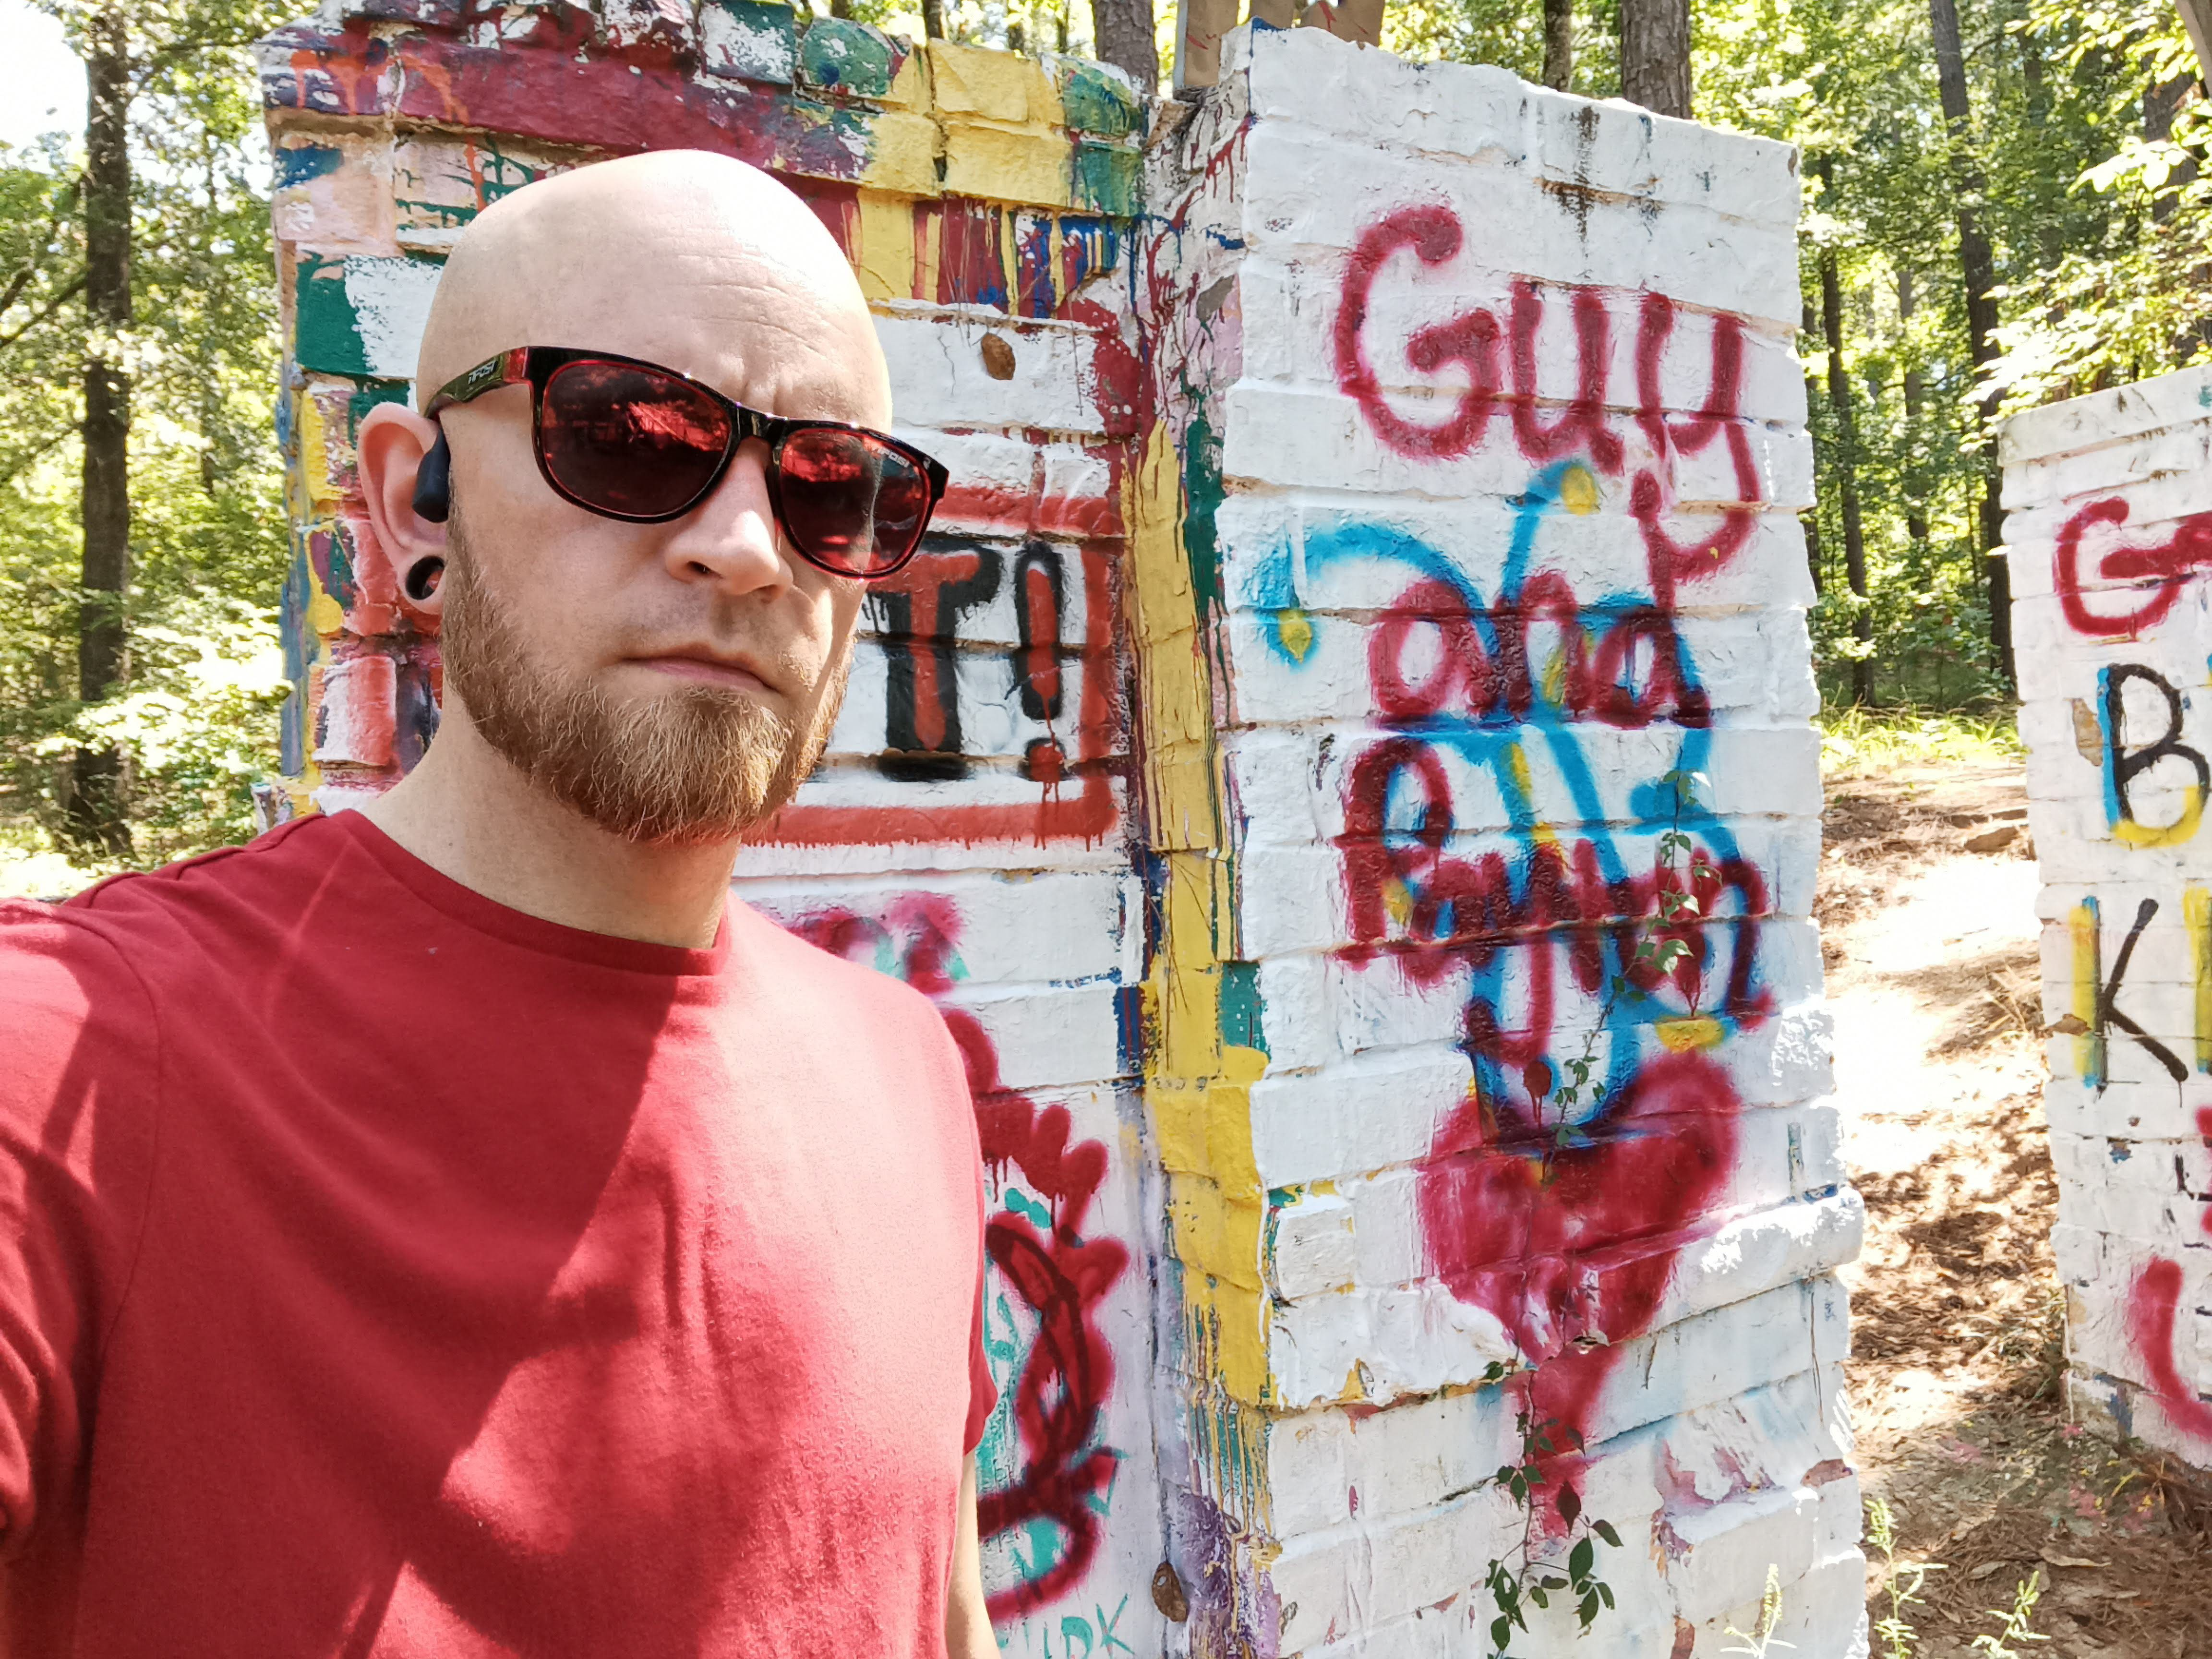 BLU G91 Pro front camera sample: A selfie in front of a graffiti wall